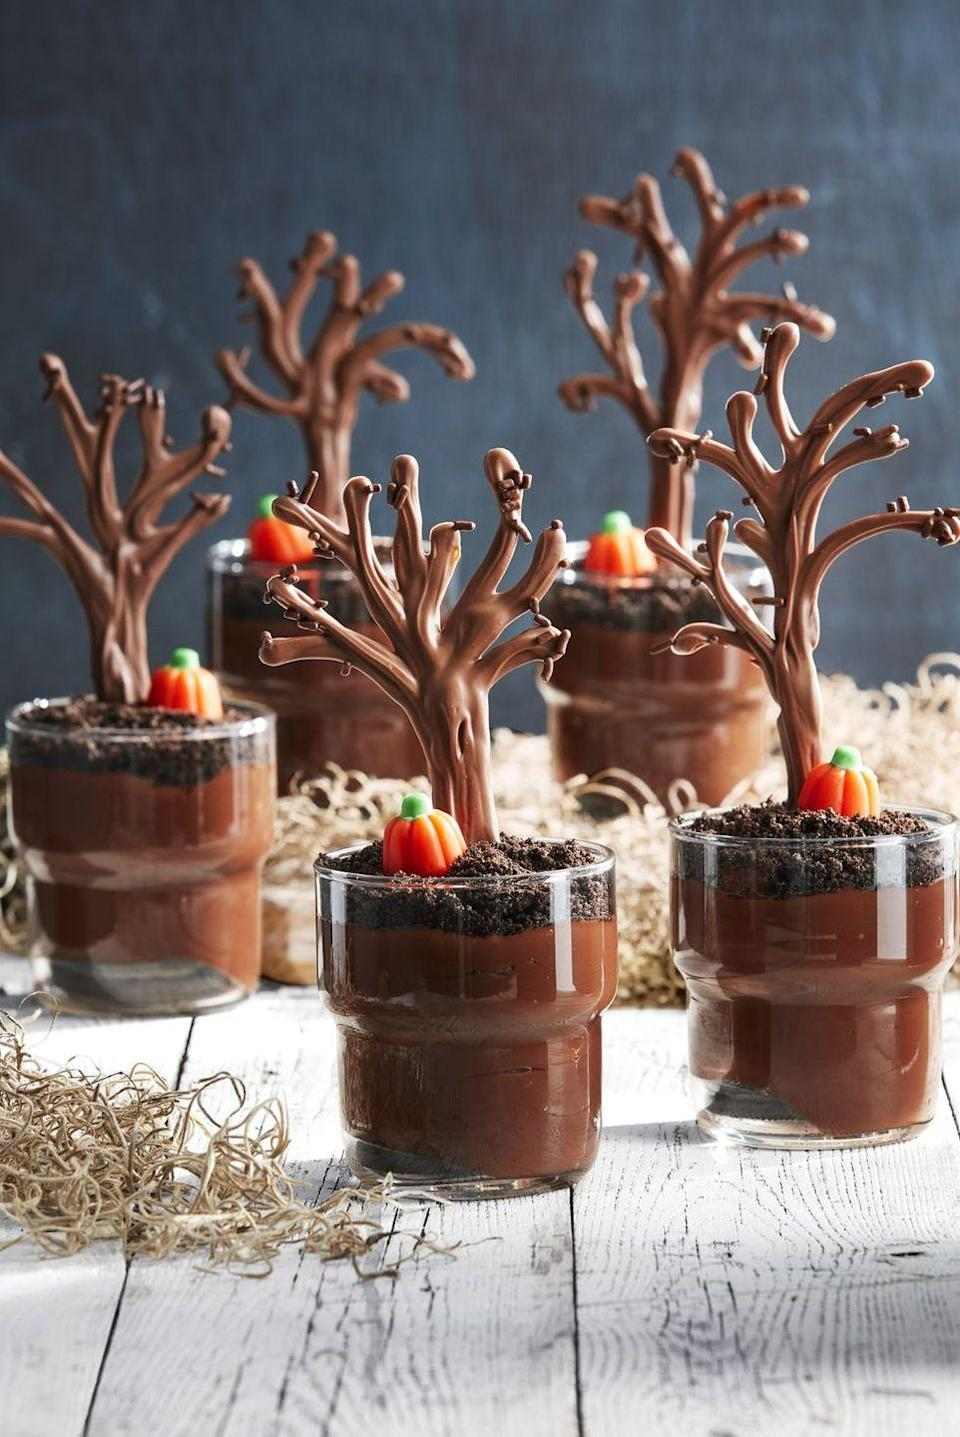 """<p>Chocolate trees and candy pumpkins add Halloween vibes to pudding cups.</p><p><em><a href=""""https://www.countryliving.com/food-drinks/a28943384/spooky-forest-pudding-cups/"""" rel=""""nofollow noopener"""" target=""""_blank"""" data-ylk=""""slk:Get the recipe from Country Living »"""" class=""""link rapid-noclick-resp"""">Get the recipe from Country Living »</a></em></p>"""